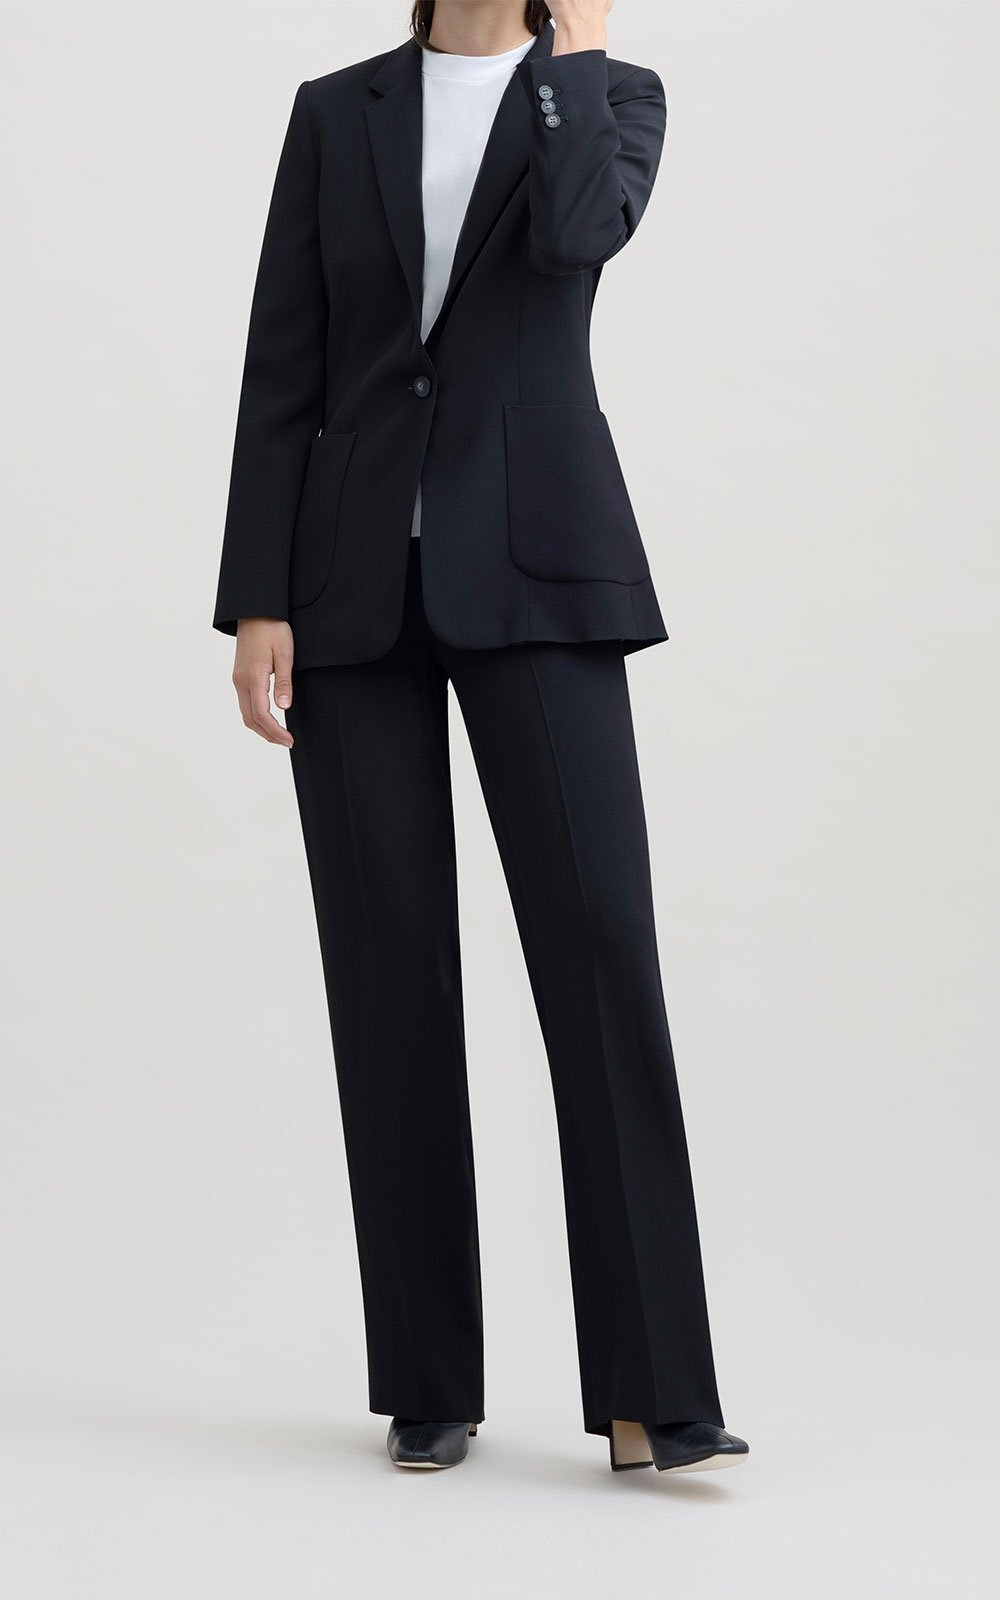 Bomary black trousers